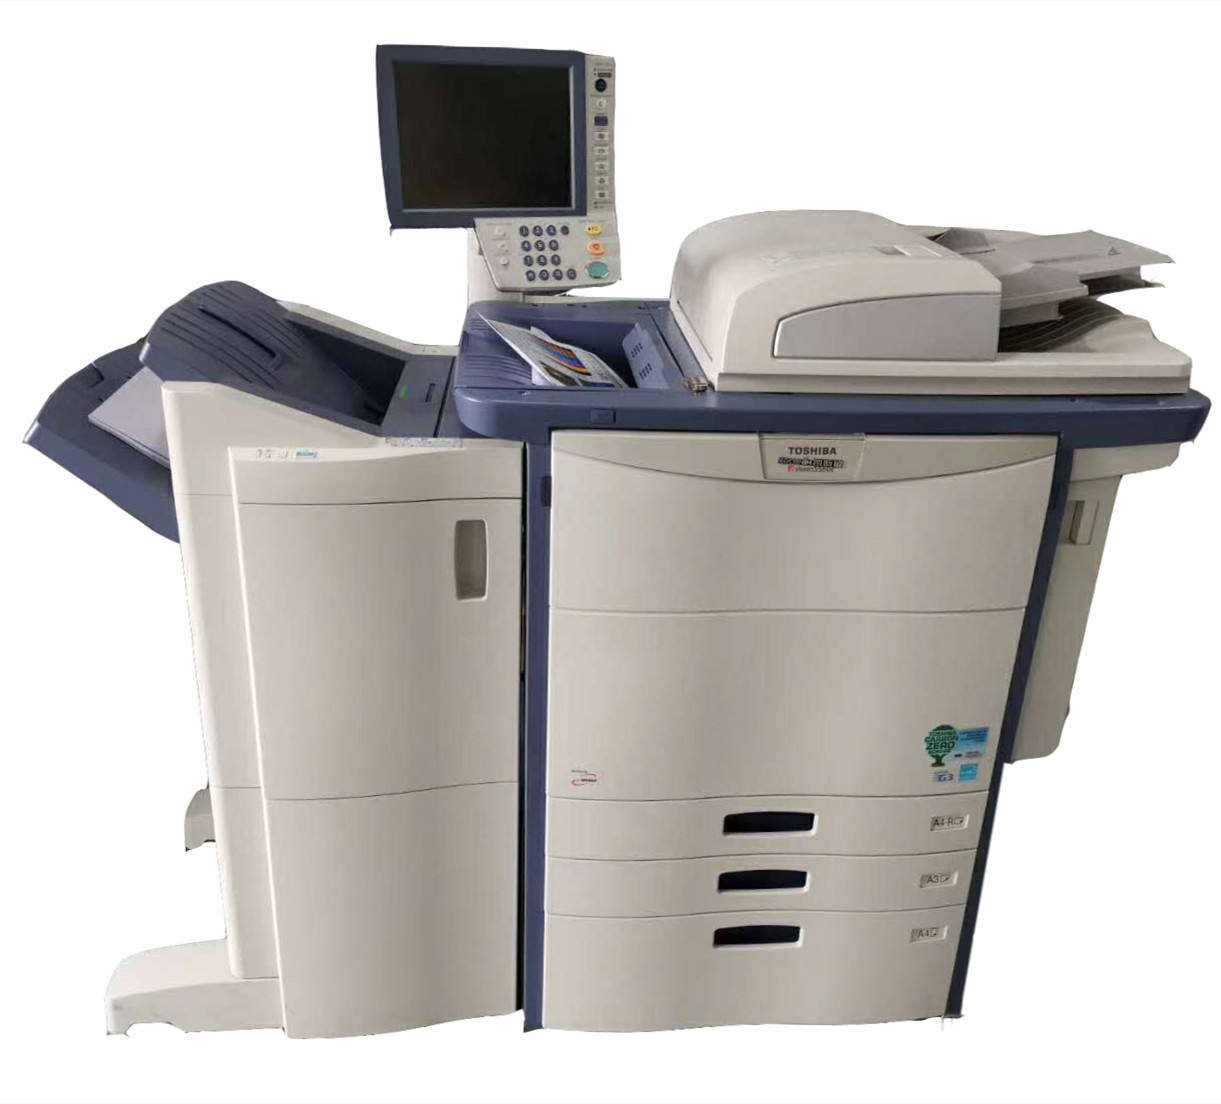 Used Laser Printers Photocopiers for Toshibas e-STUDIO 5540C 6540C 6550C Second hand A3 Copiers